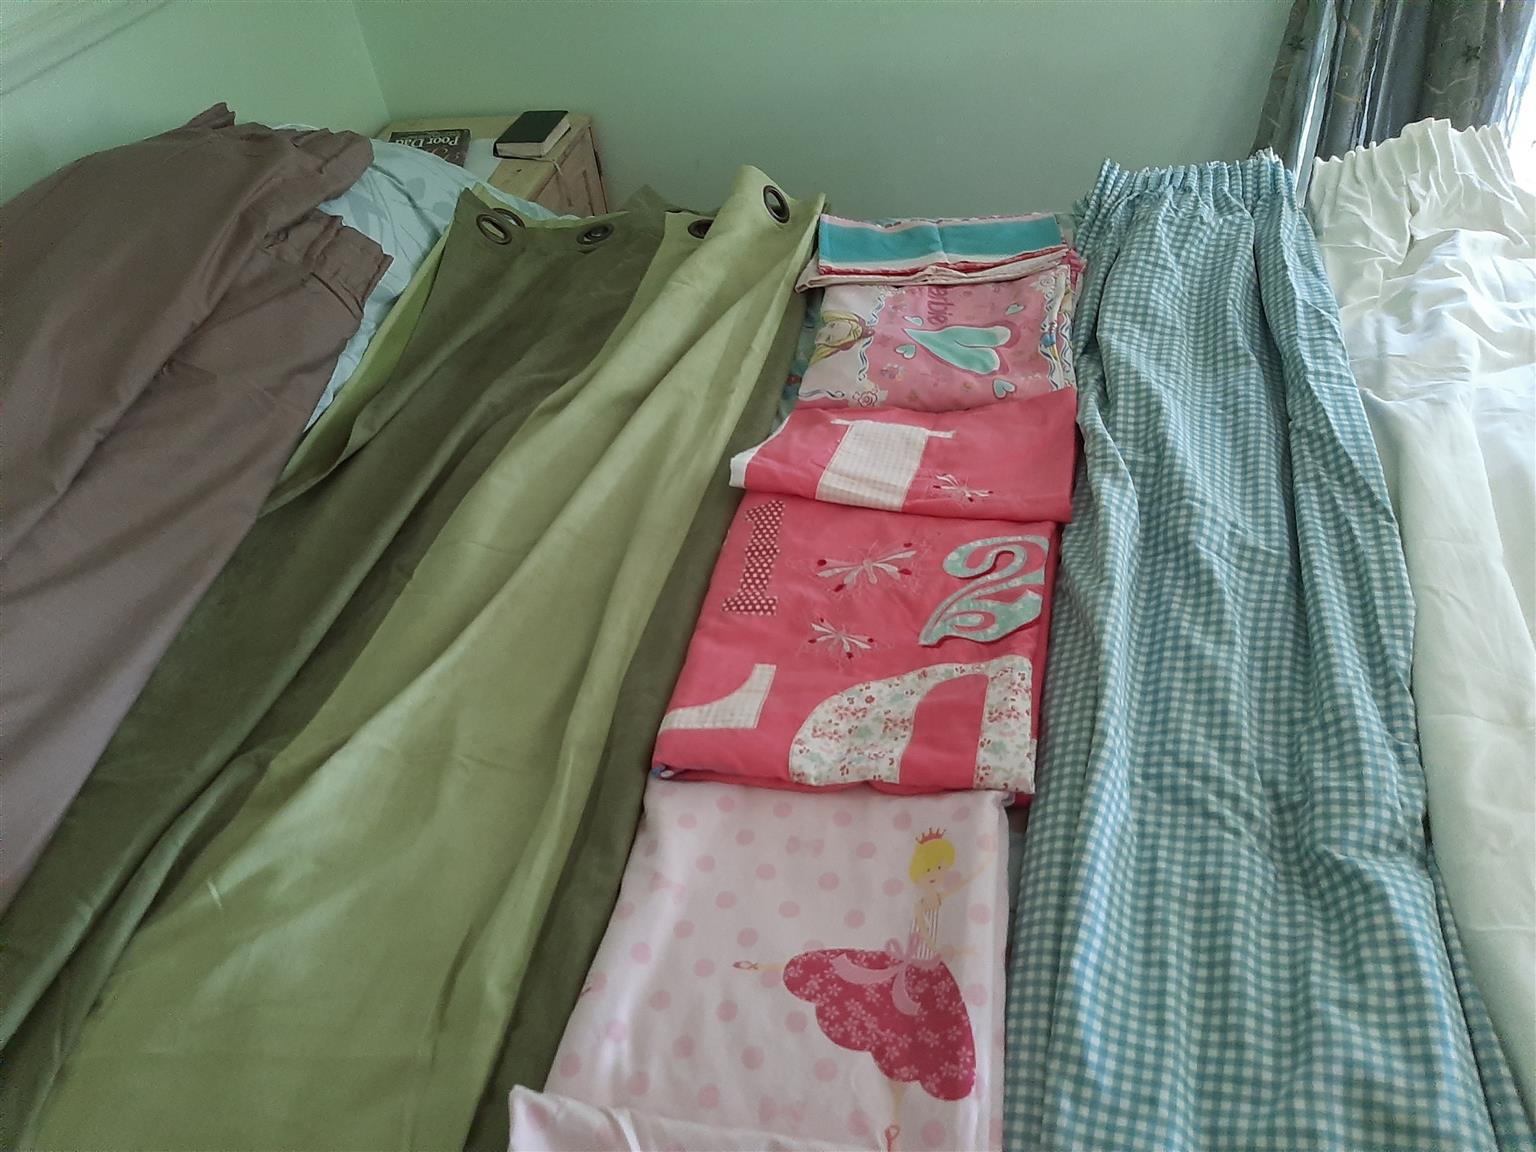 Curtains & bed linen